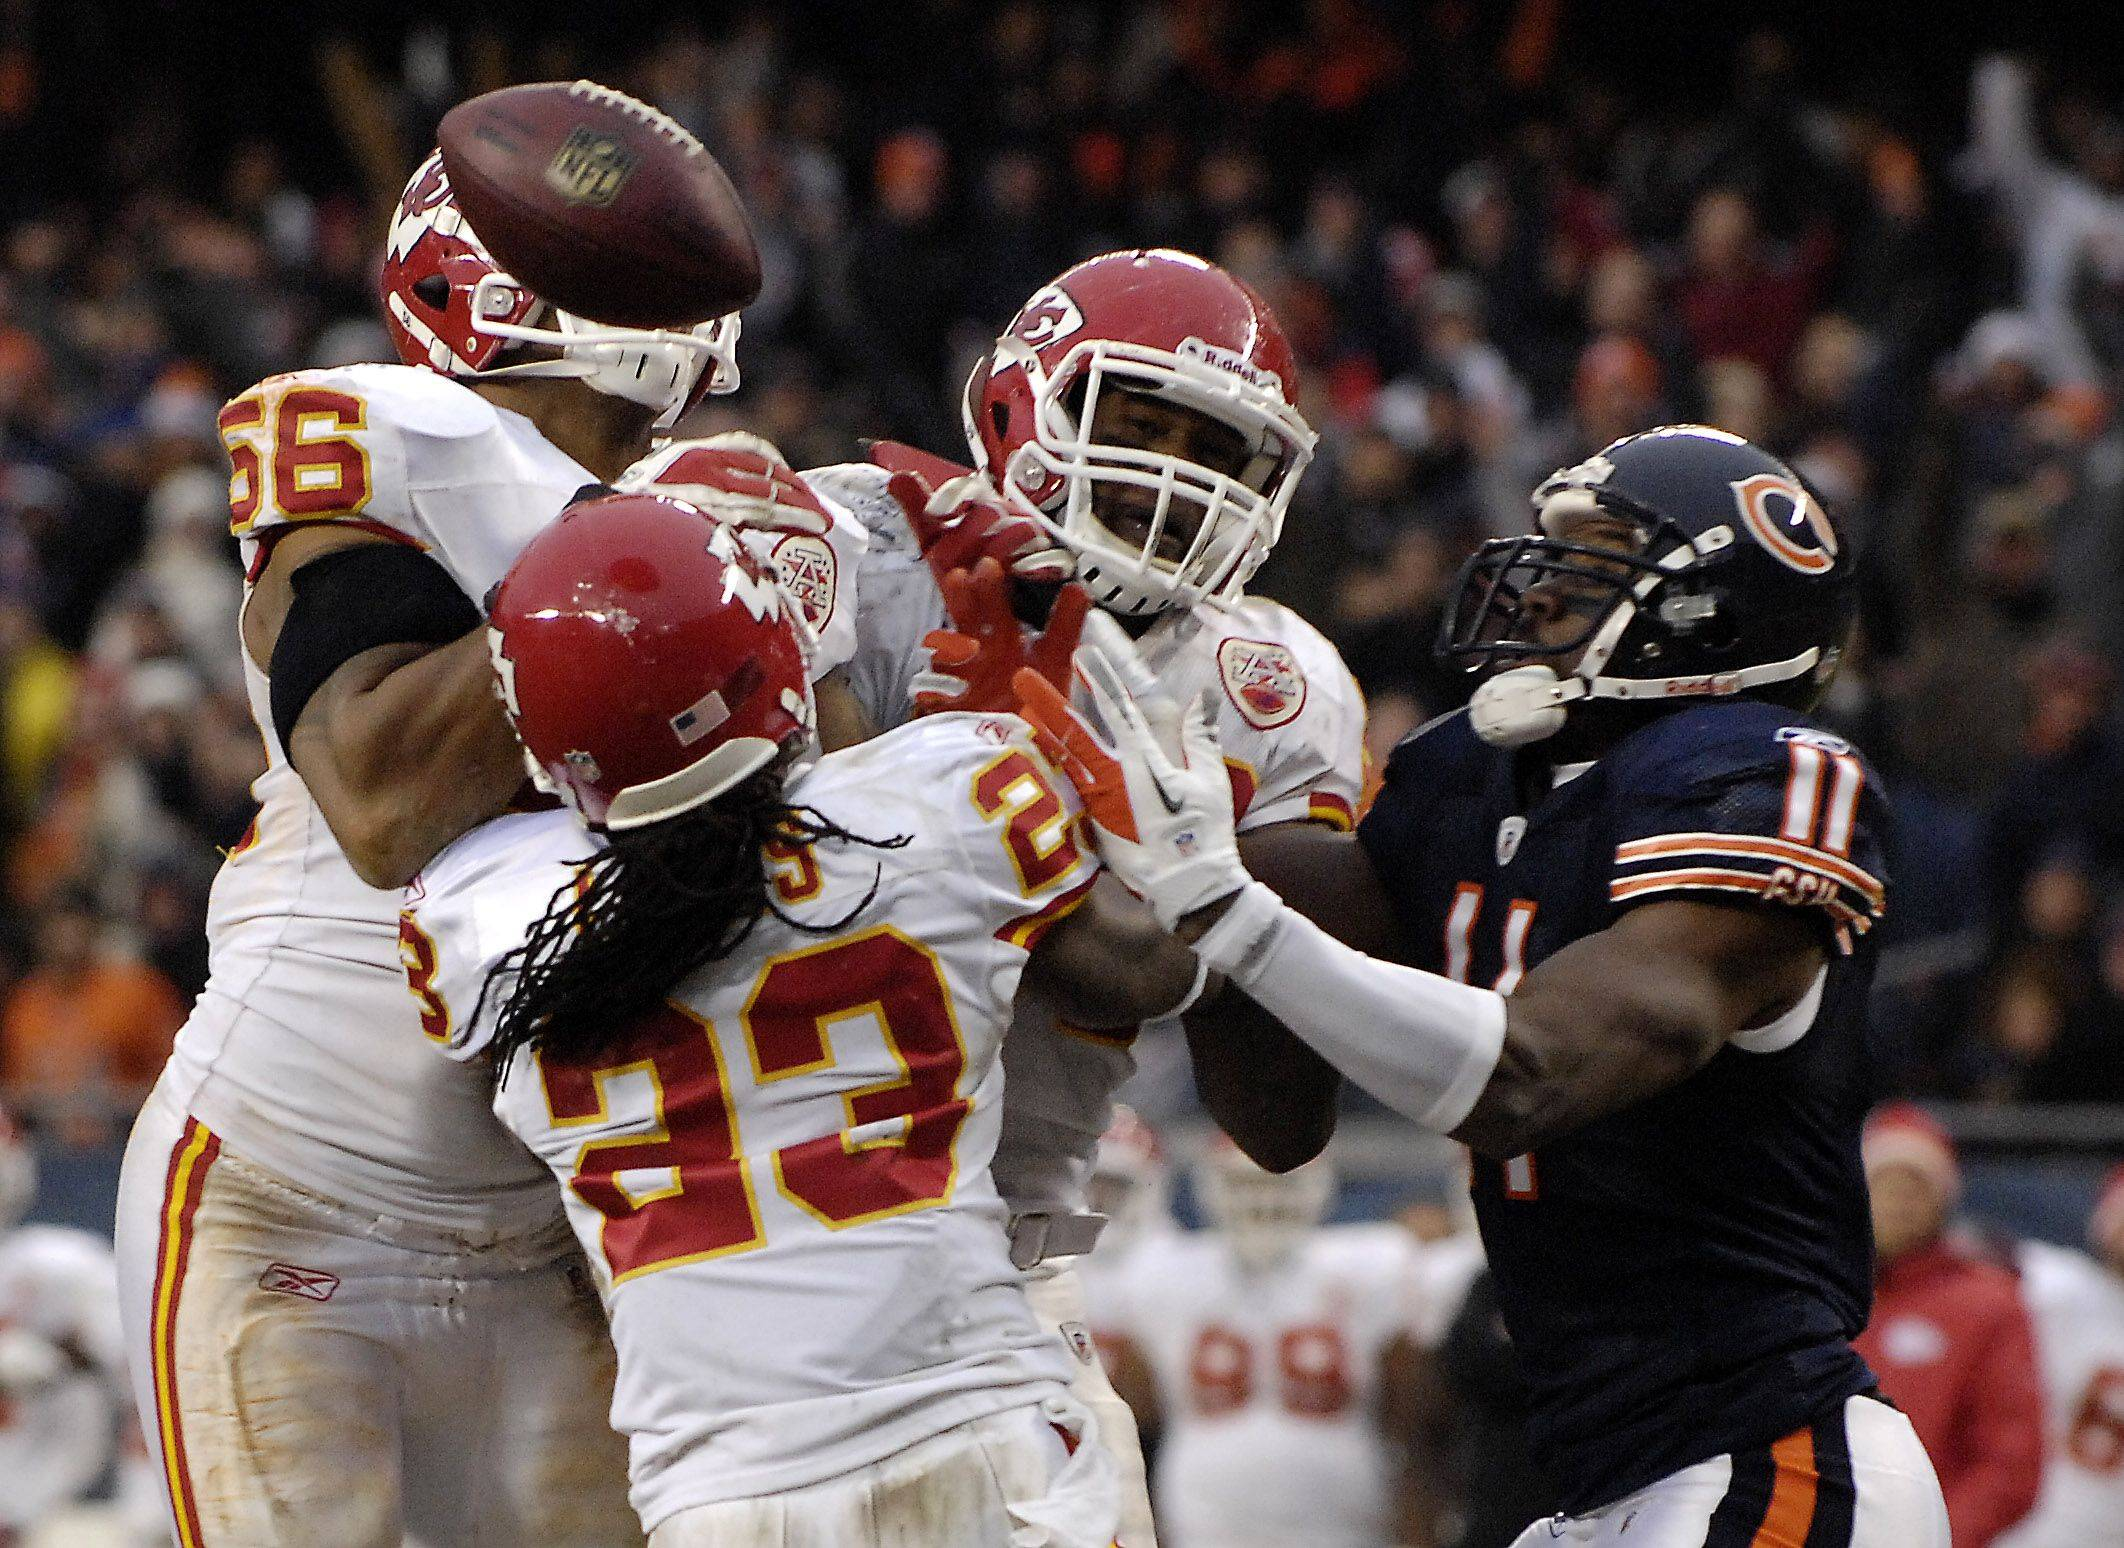 Three Chiefs defenders clamor for the ball after it went off the hands of Chicago Bears wide receiver Roy Williams (11) during Sunday's game at Soldier Field in Chicago. It was intercepted in the end zone by the Chiefs.